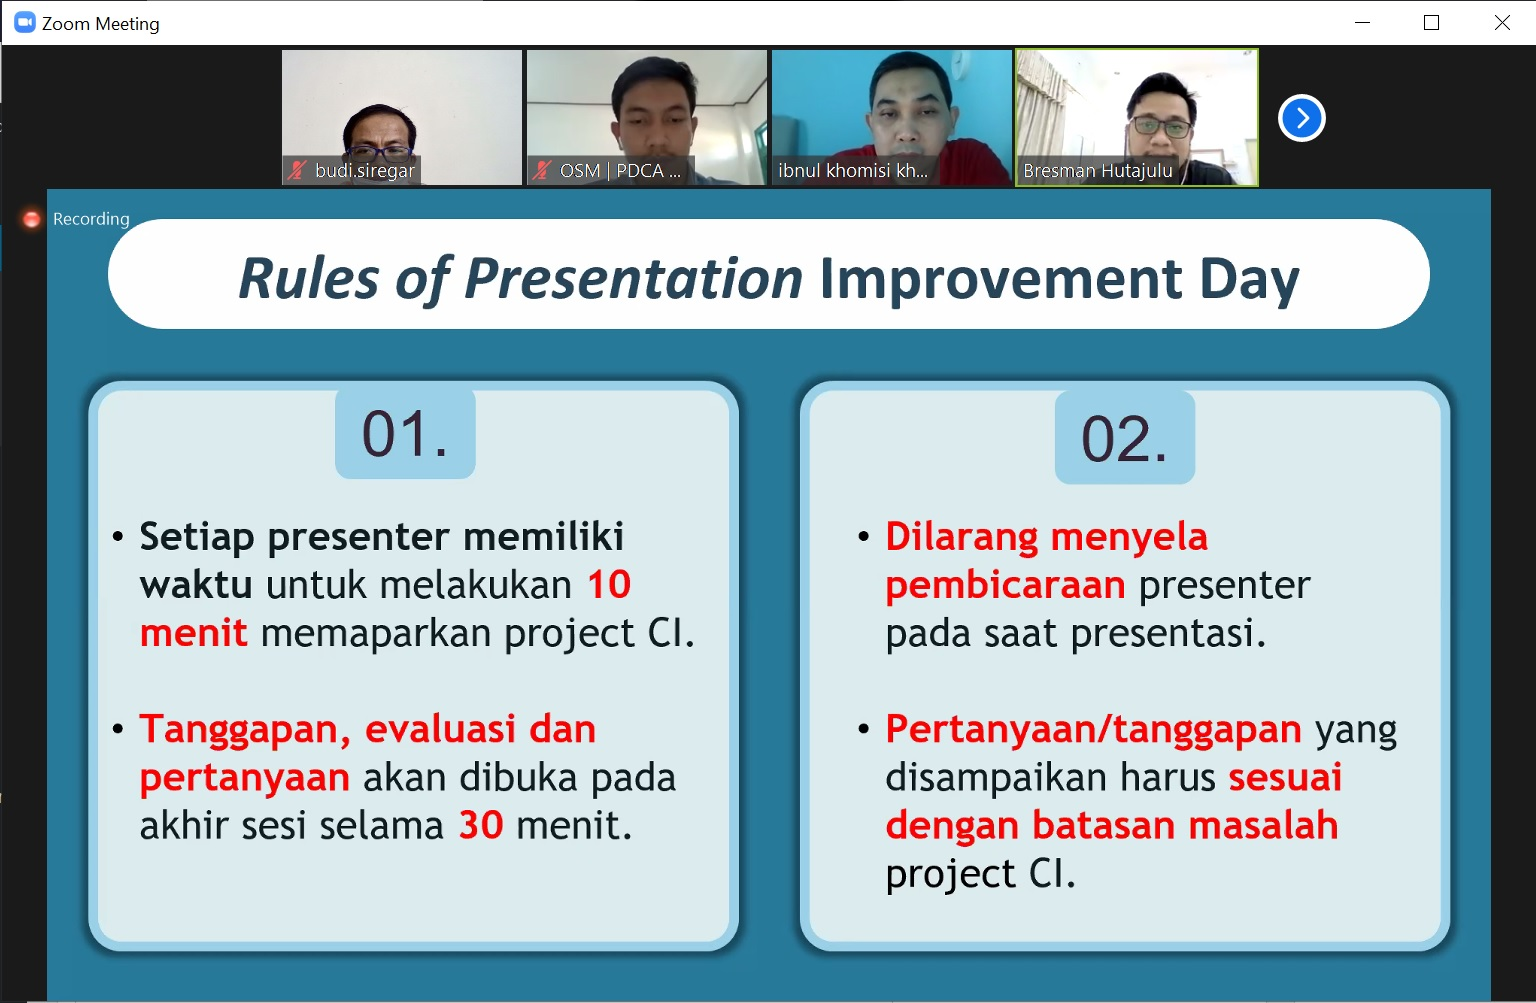 Rules of Presentation Improvement Day